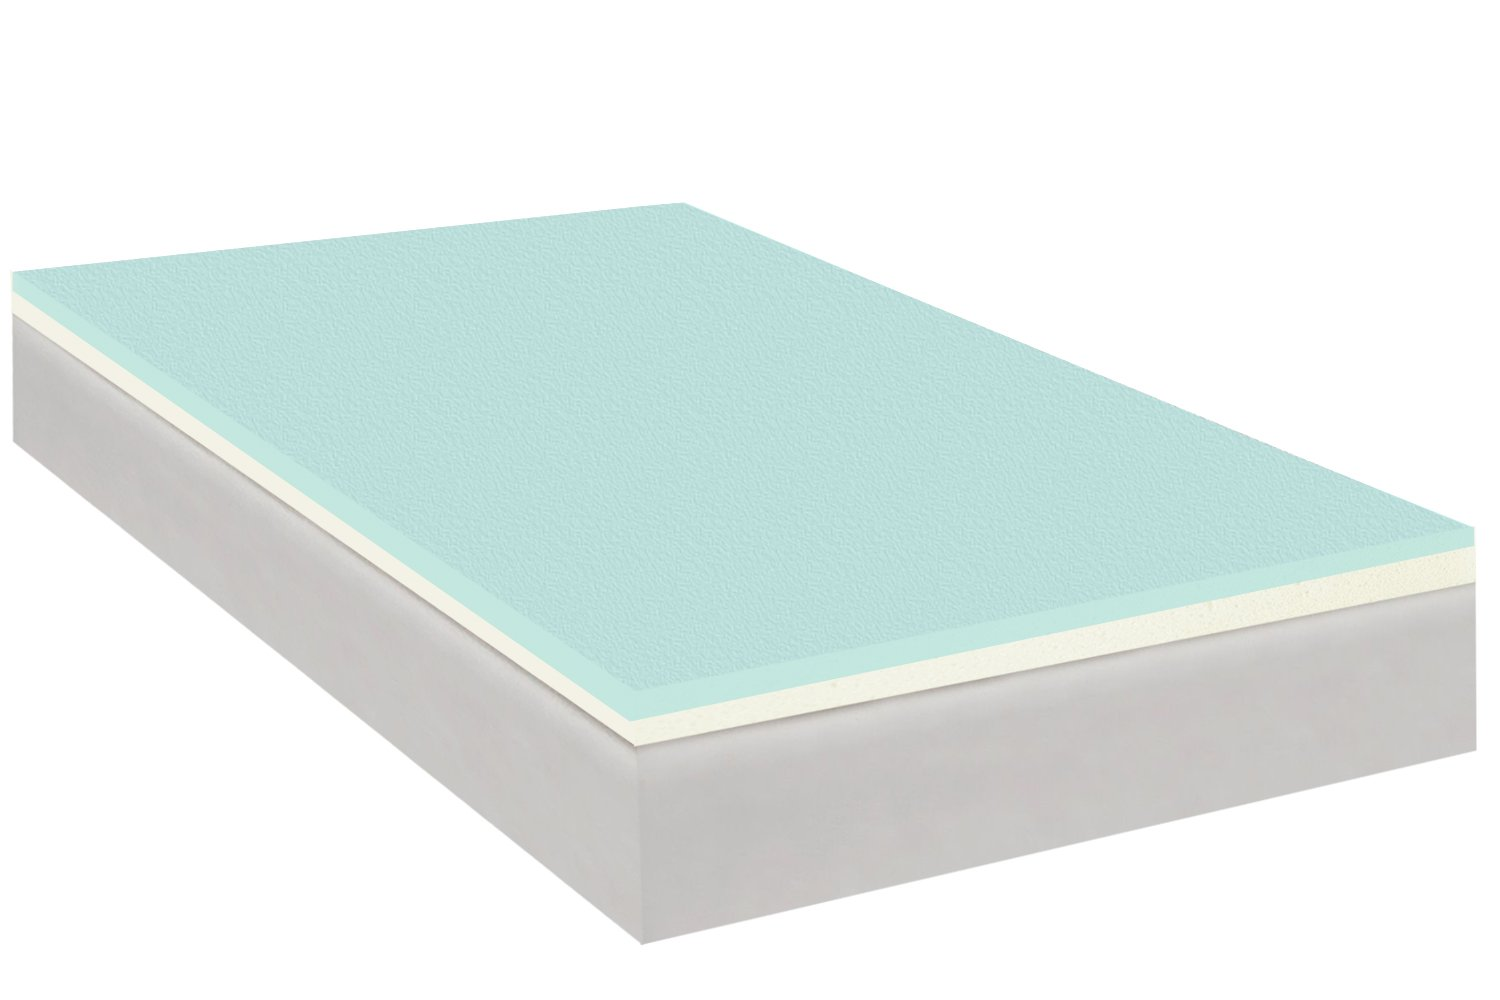 Continental Sleep 2 Inches Gel Infused High Density Foam Mattress Topper Queen Ebay